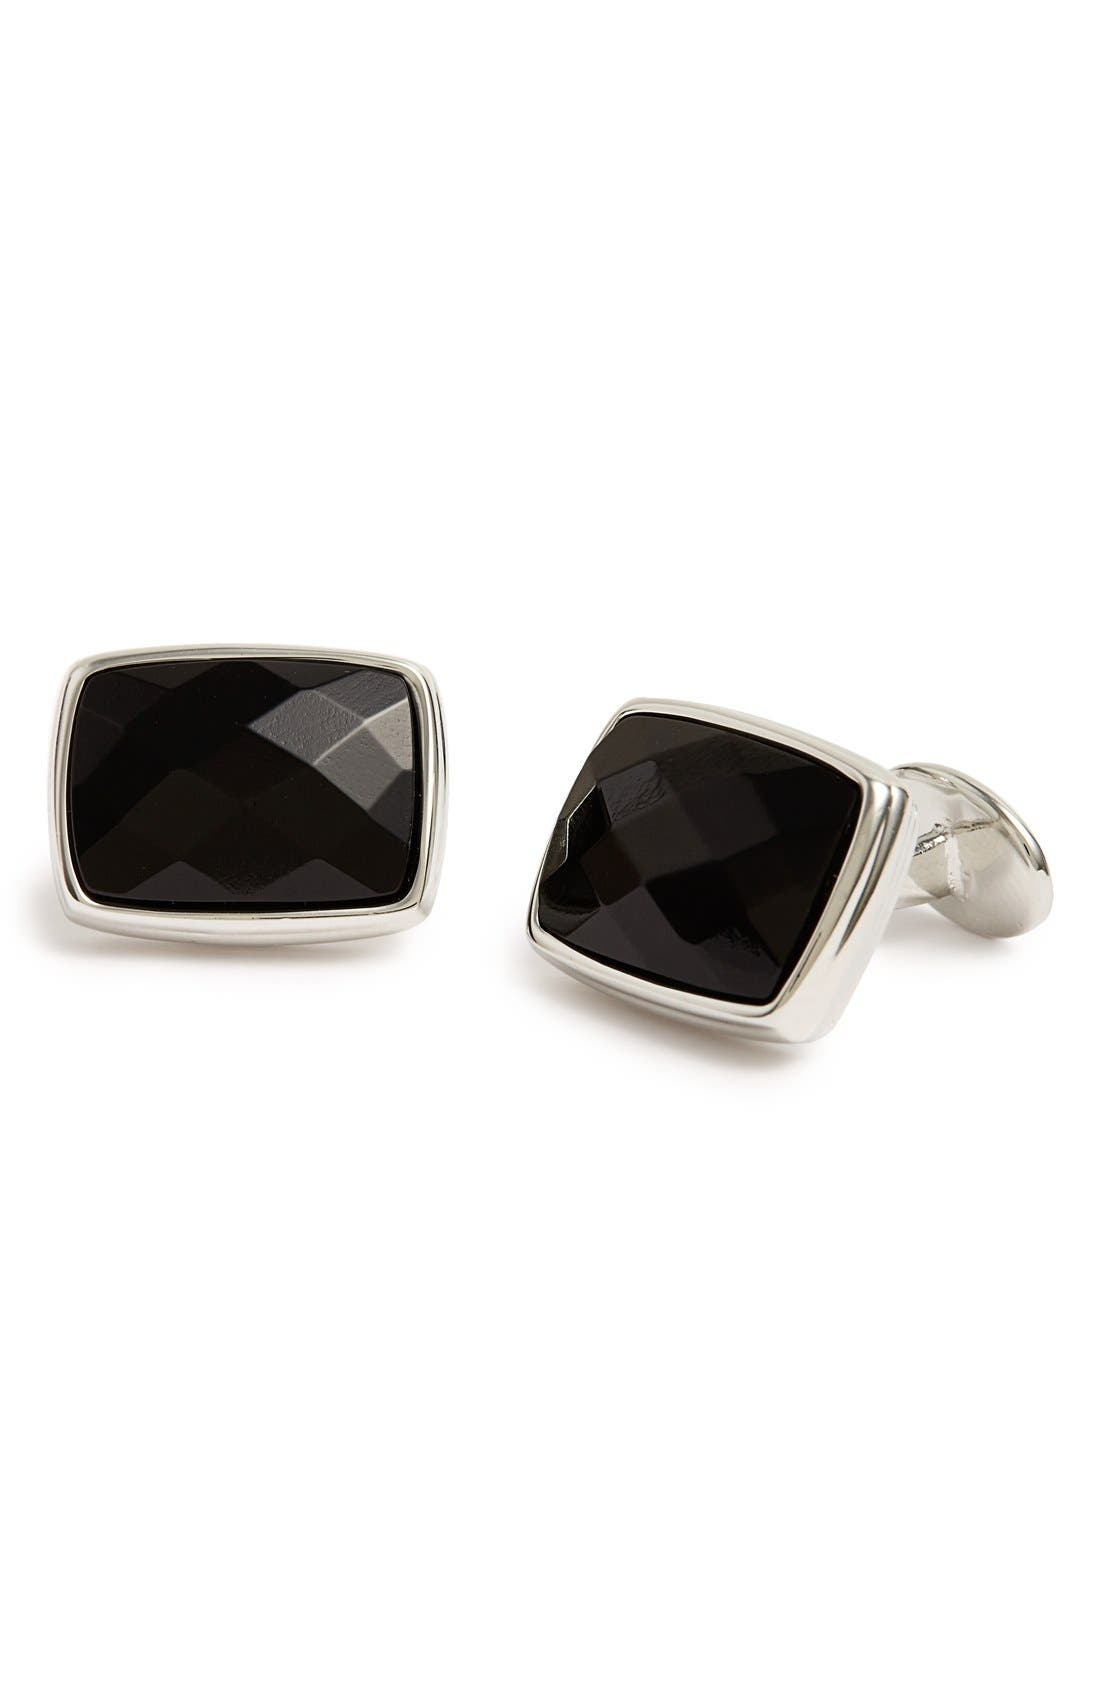 Alternate Image 1 Selected - David Donahue Onyx Cuff Links